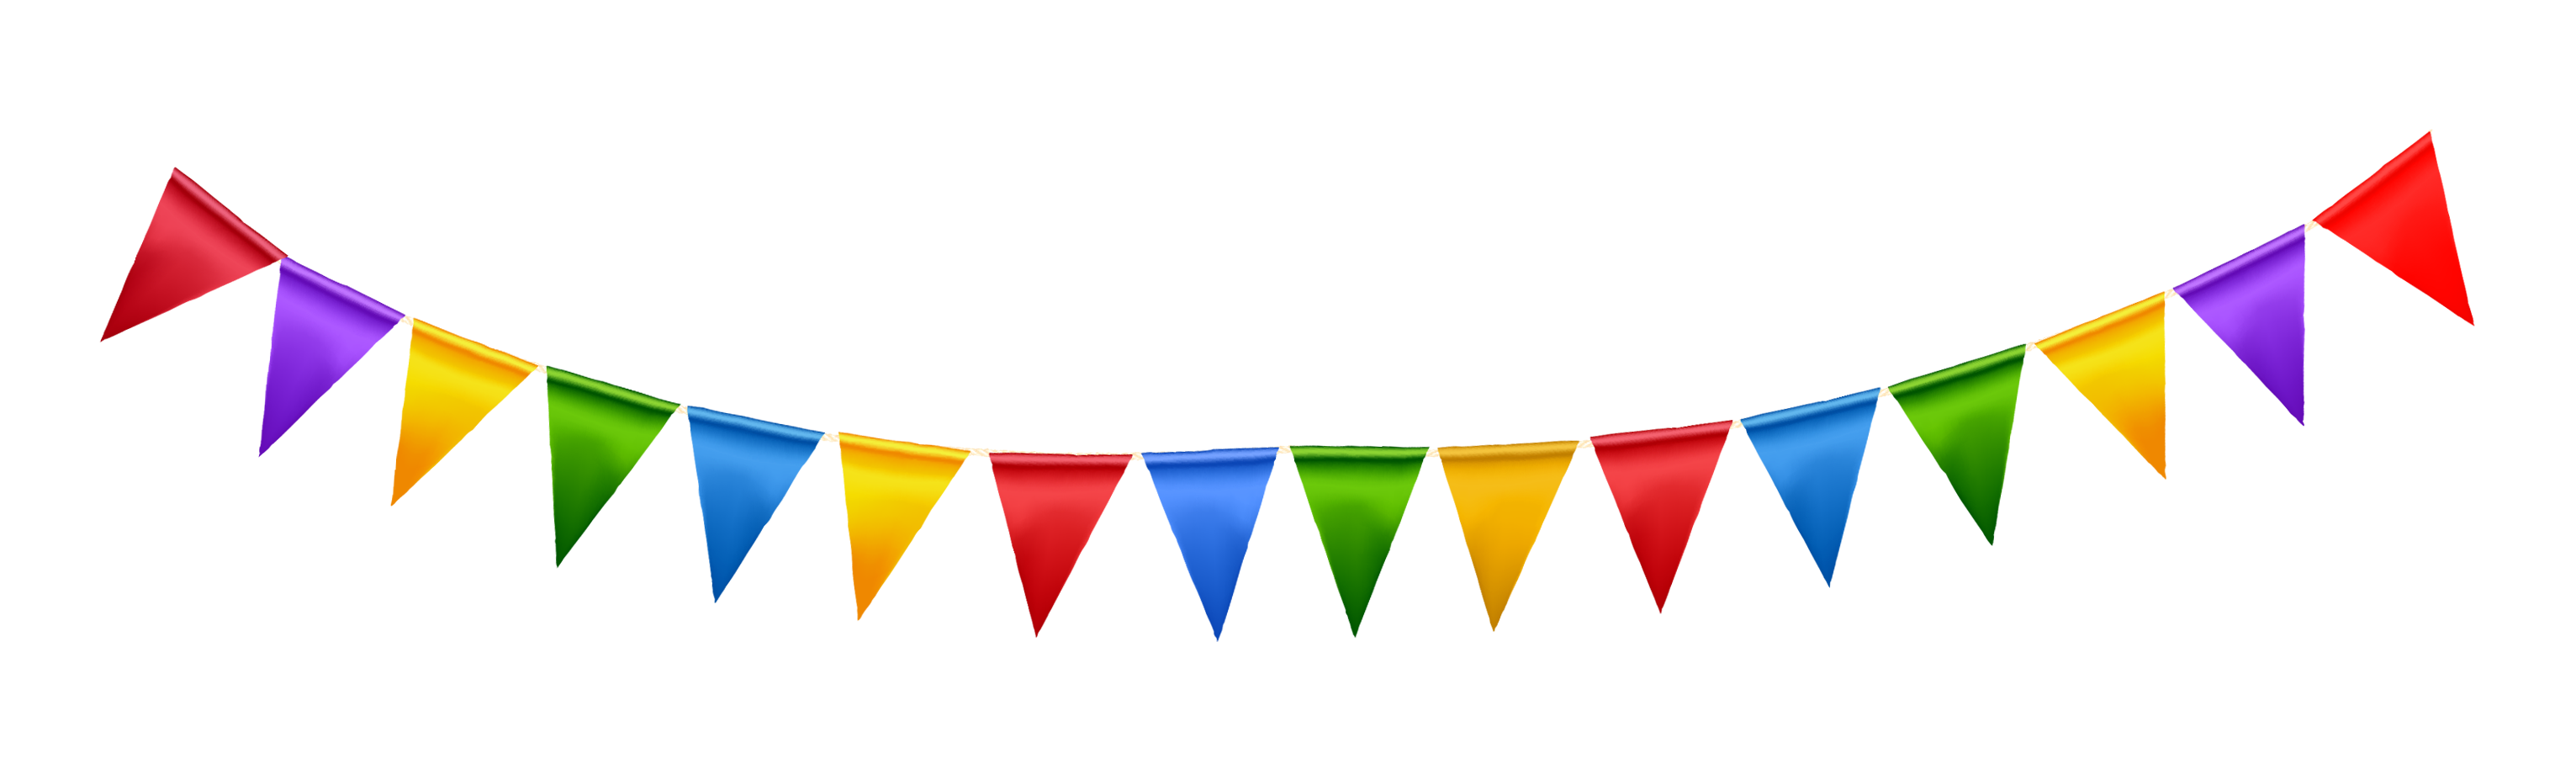 3063x908 Party Streamers Clipart